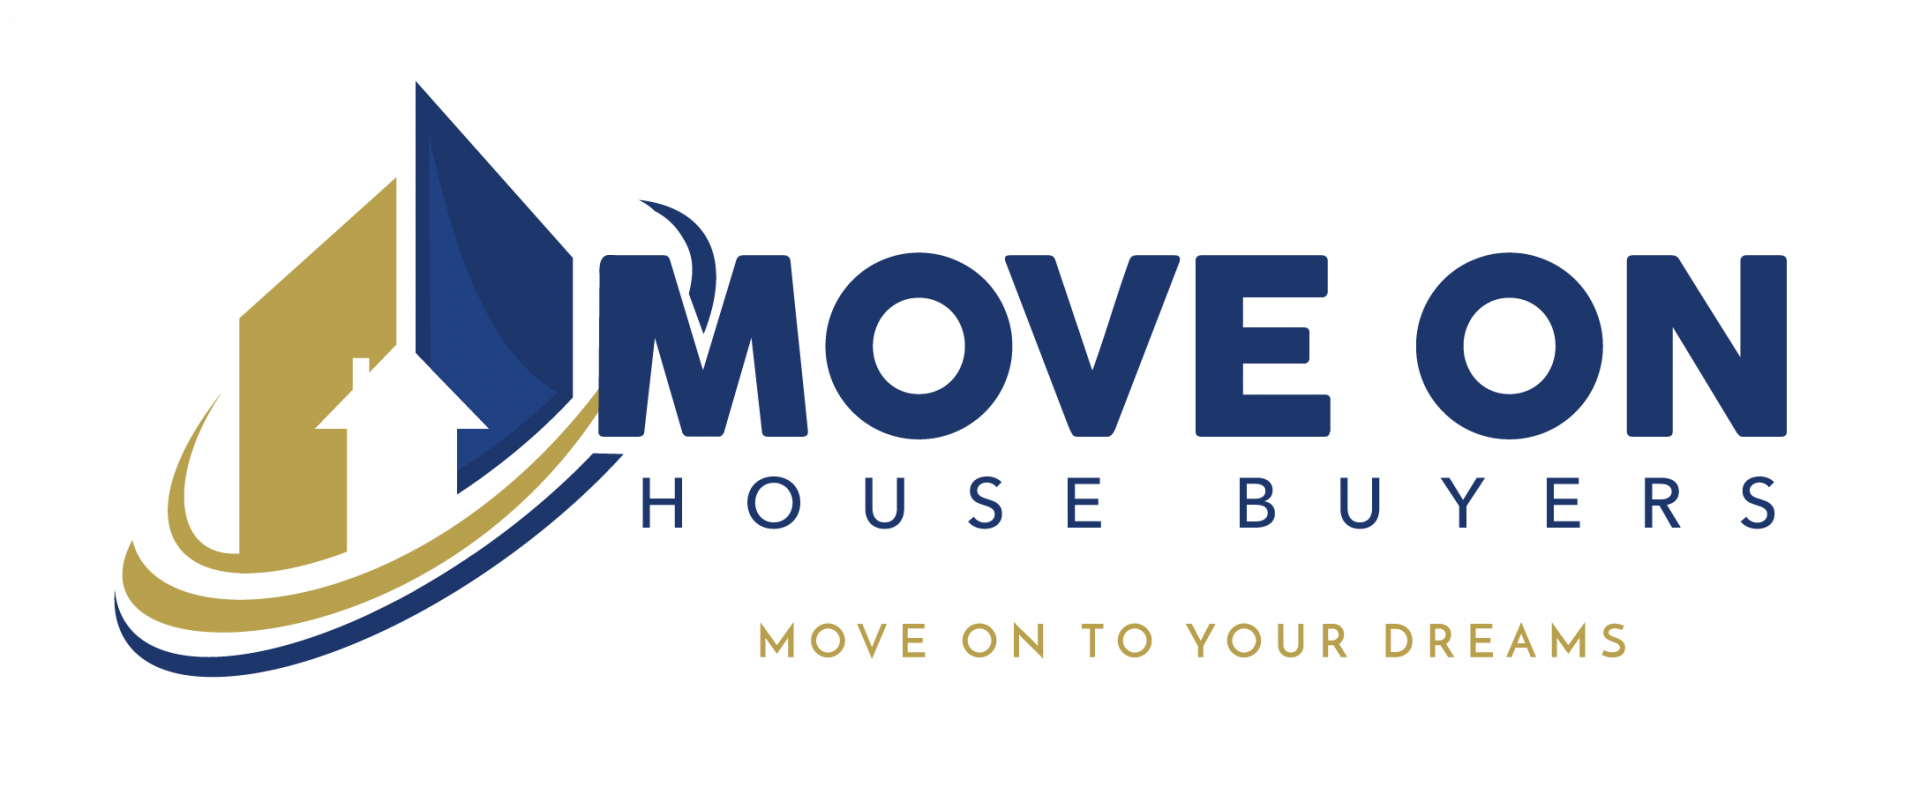 Move On House Buyers logo